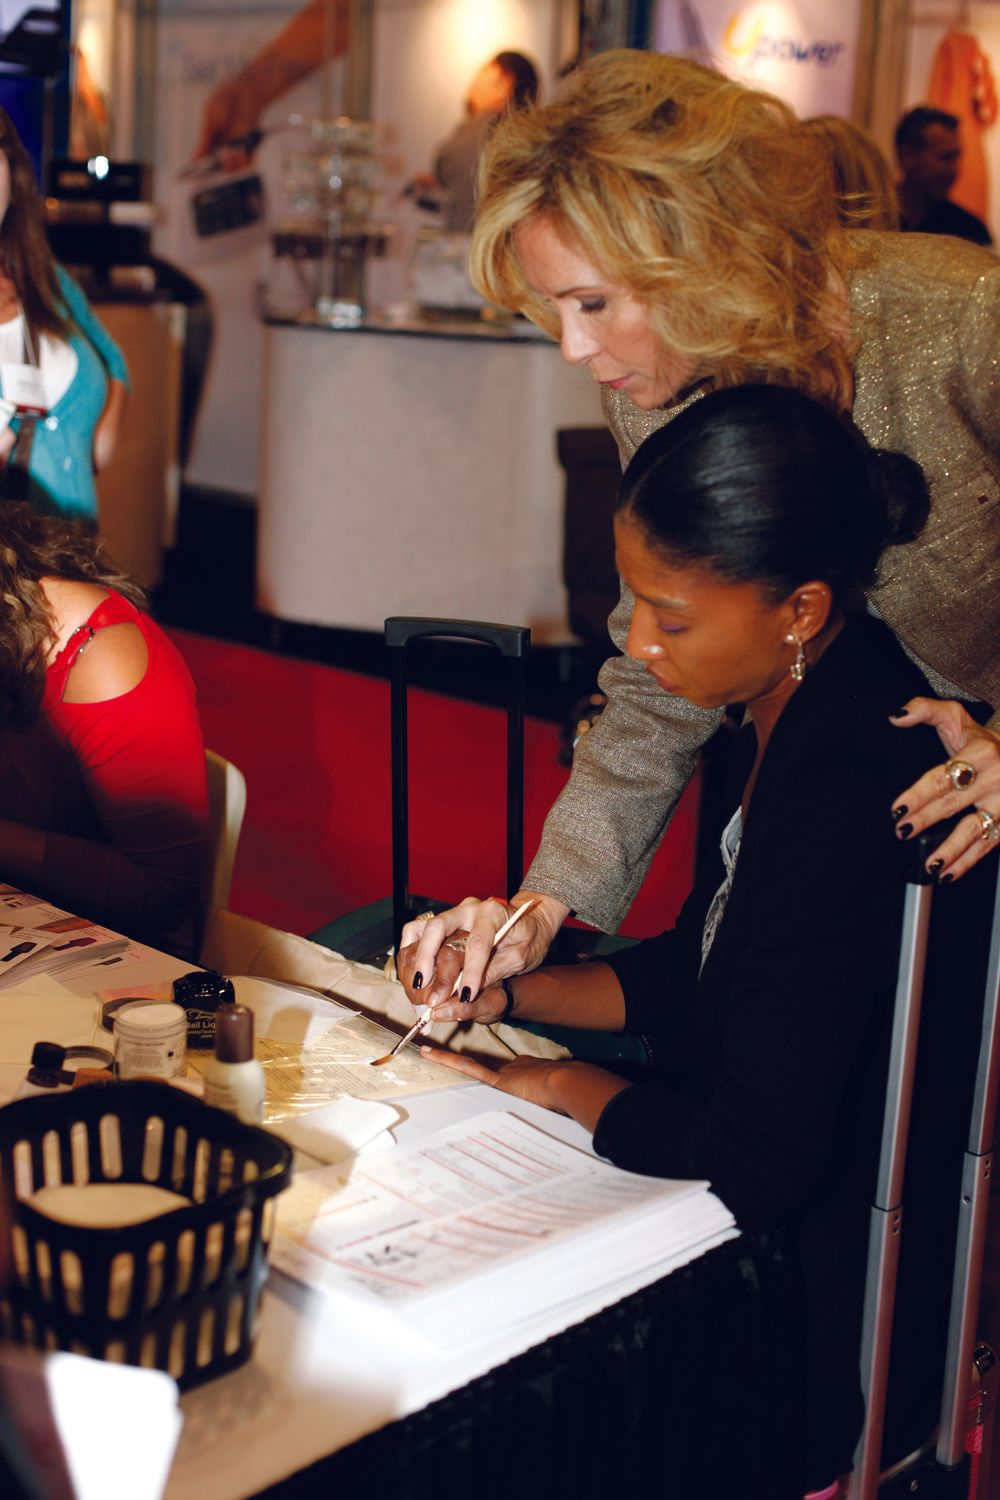 <p>Tammy Taylor took an honest-to-goodness hands-on approach to teaching. She guided House of Nails owner Valerie Sam&rsquo;s hand so she could really get a feel for Taylor&rsquo;s technique of creating perfect pink-and-white acrylic nails.</p>